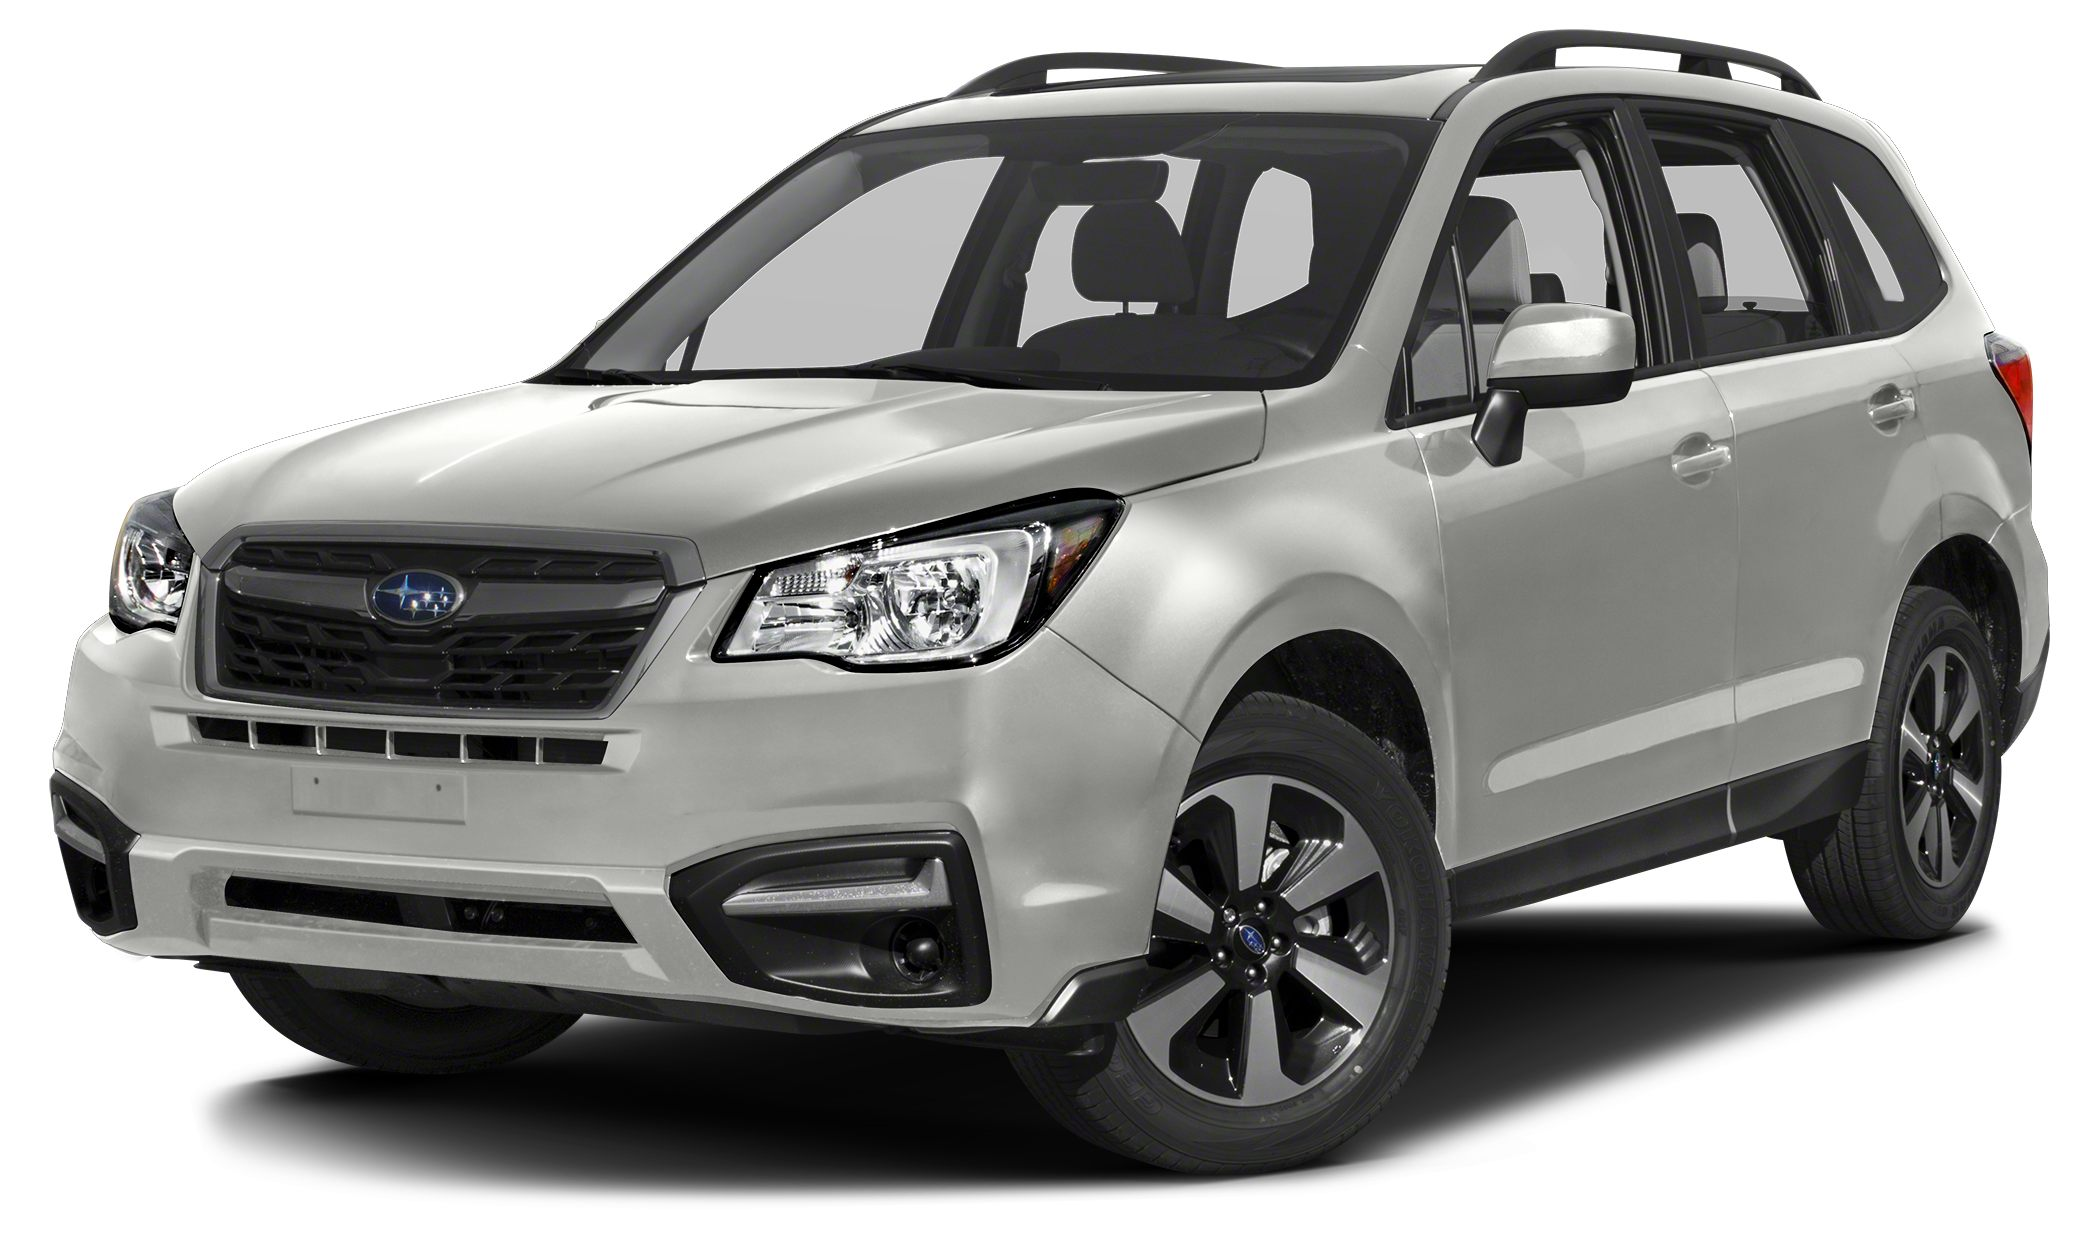 2017 Subaru Forester 25i Premium Tried and true instrumentation Plenty of room Come take a look